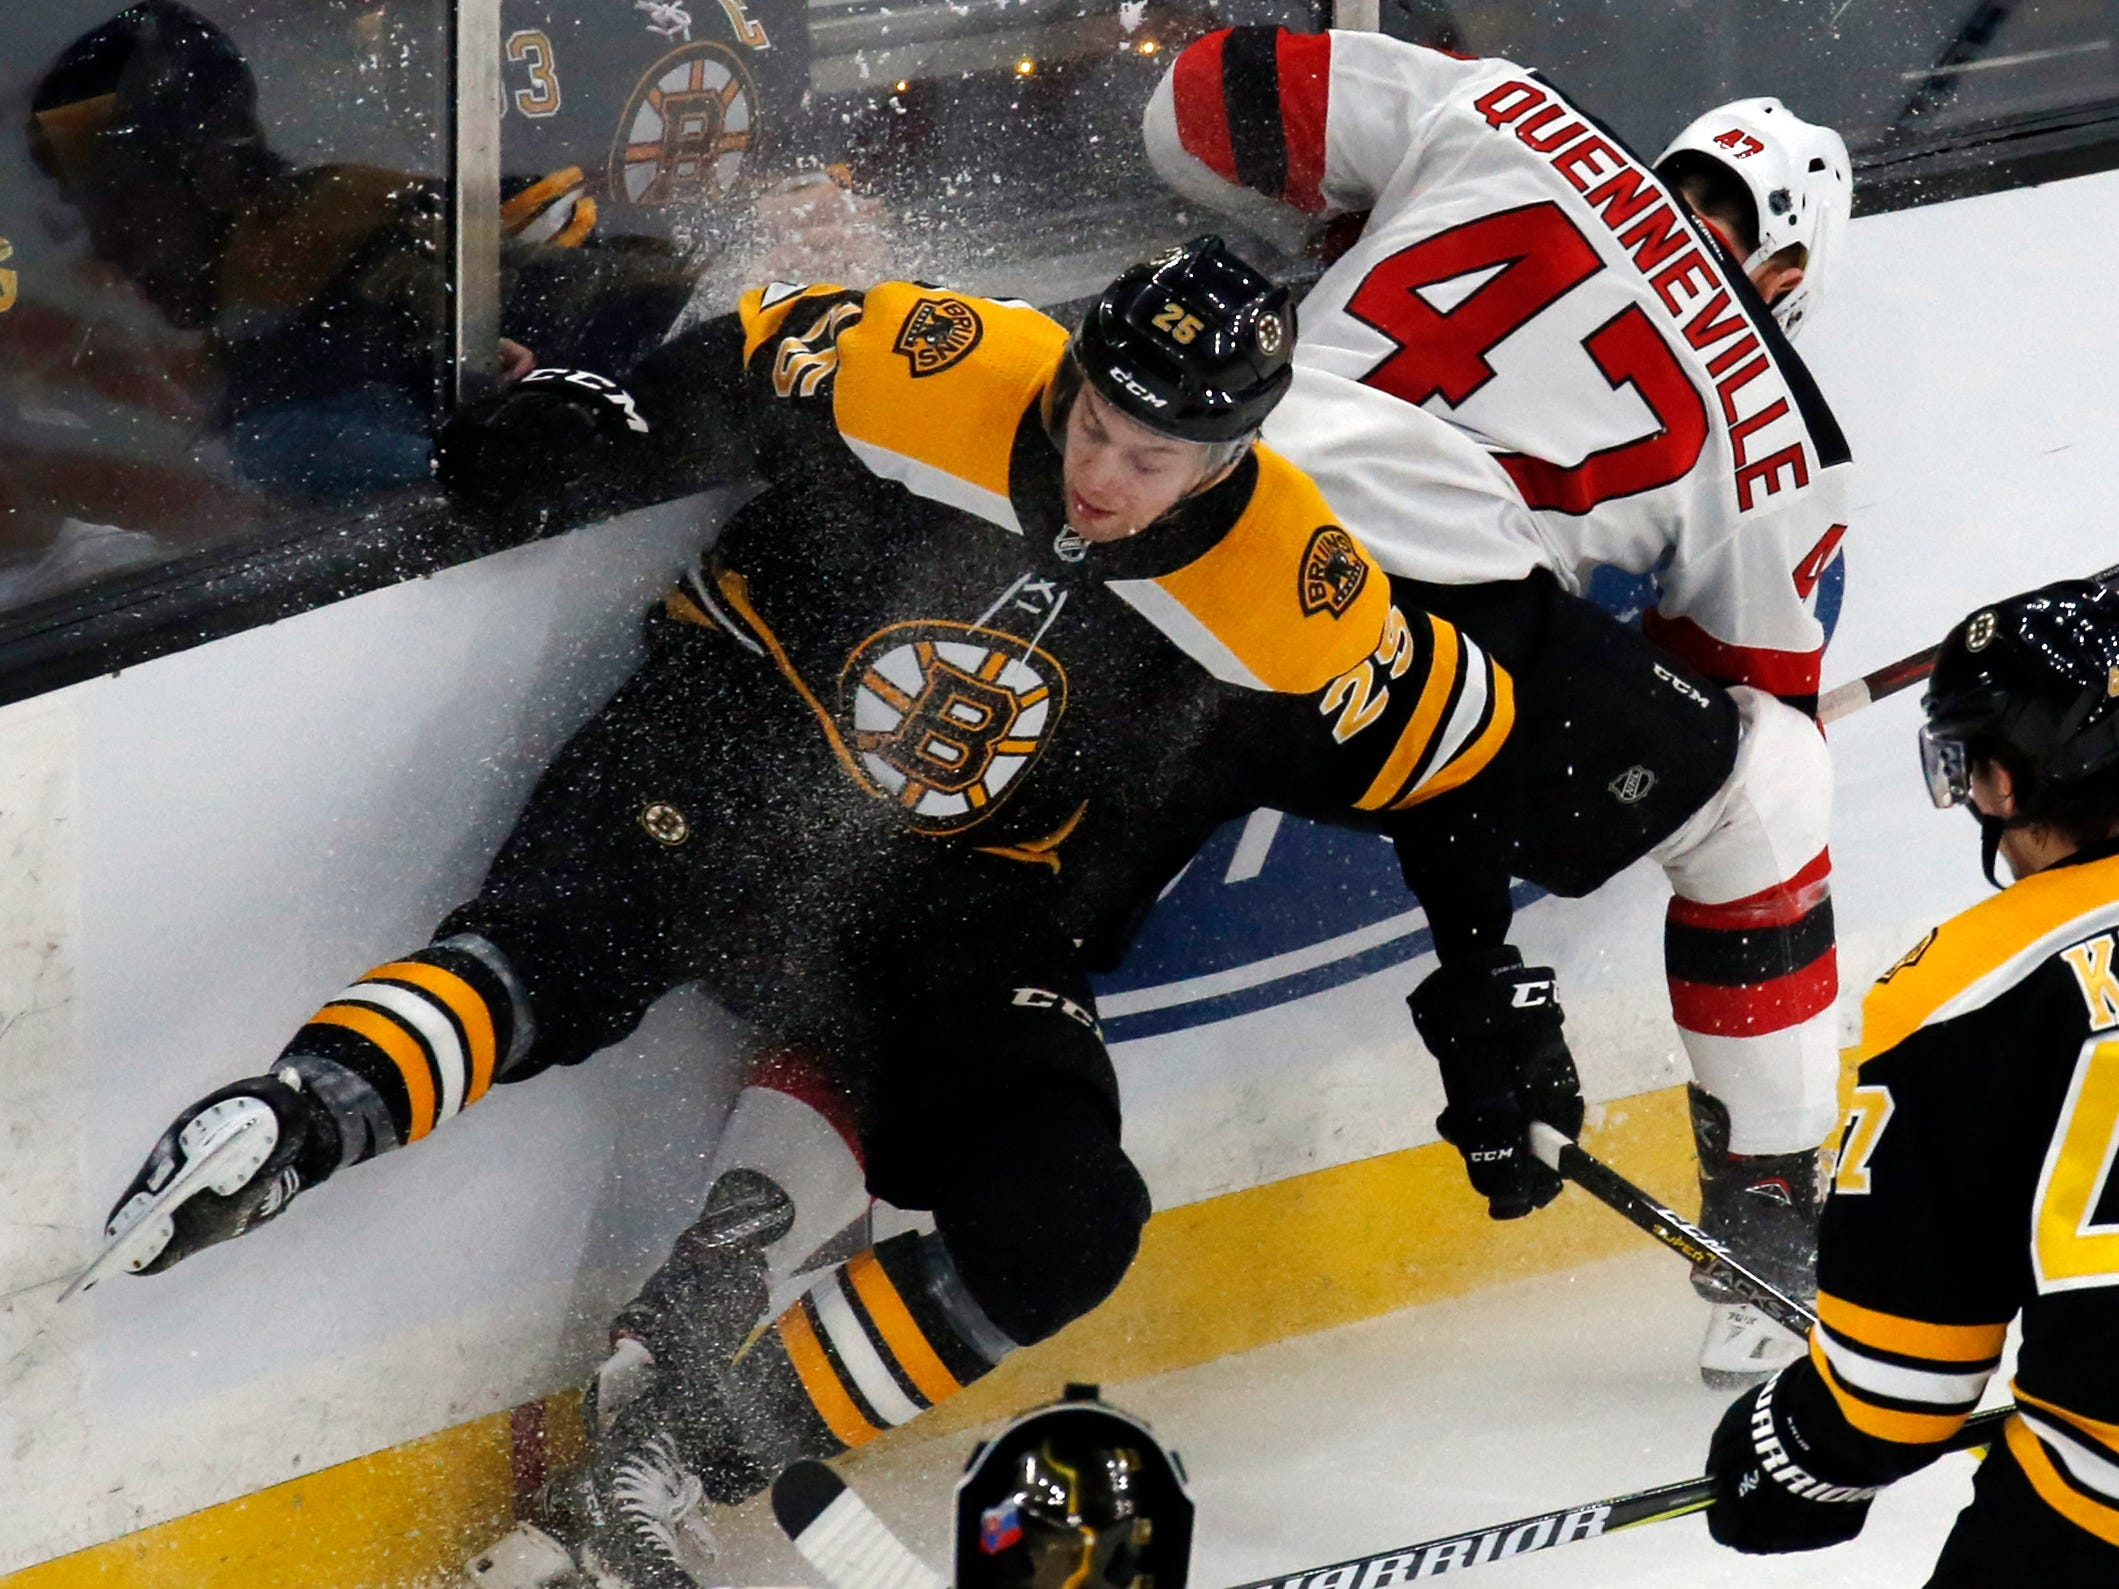 Boston Bruins defenseman Brandon Carlo (25) and New Jersey Devils center John Quenneville (47) compete for the puck along the boards during the first period of an NHL hockey game Thursday, Dec. 27, 2018, in Boston.